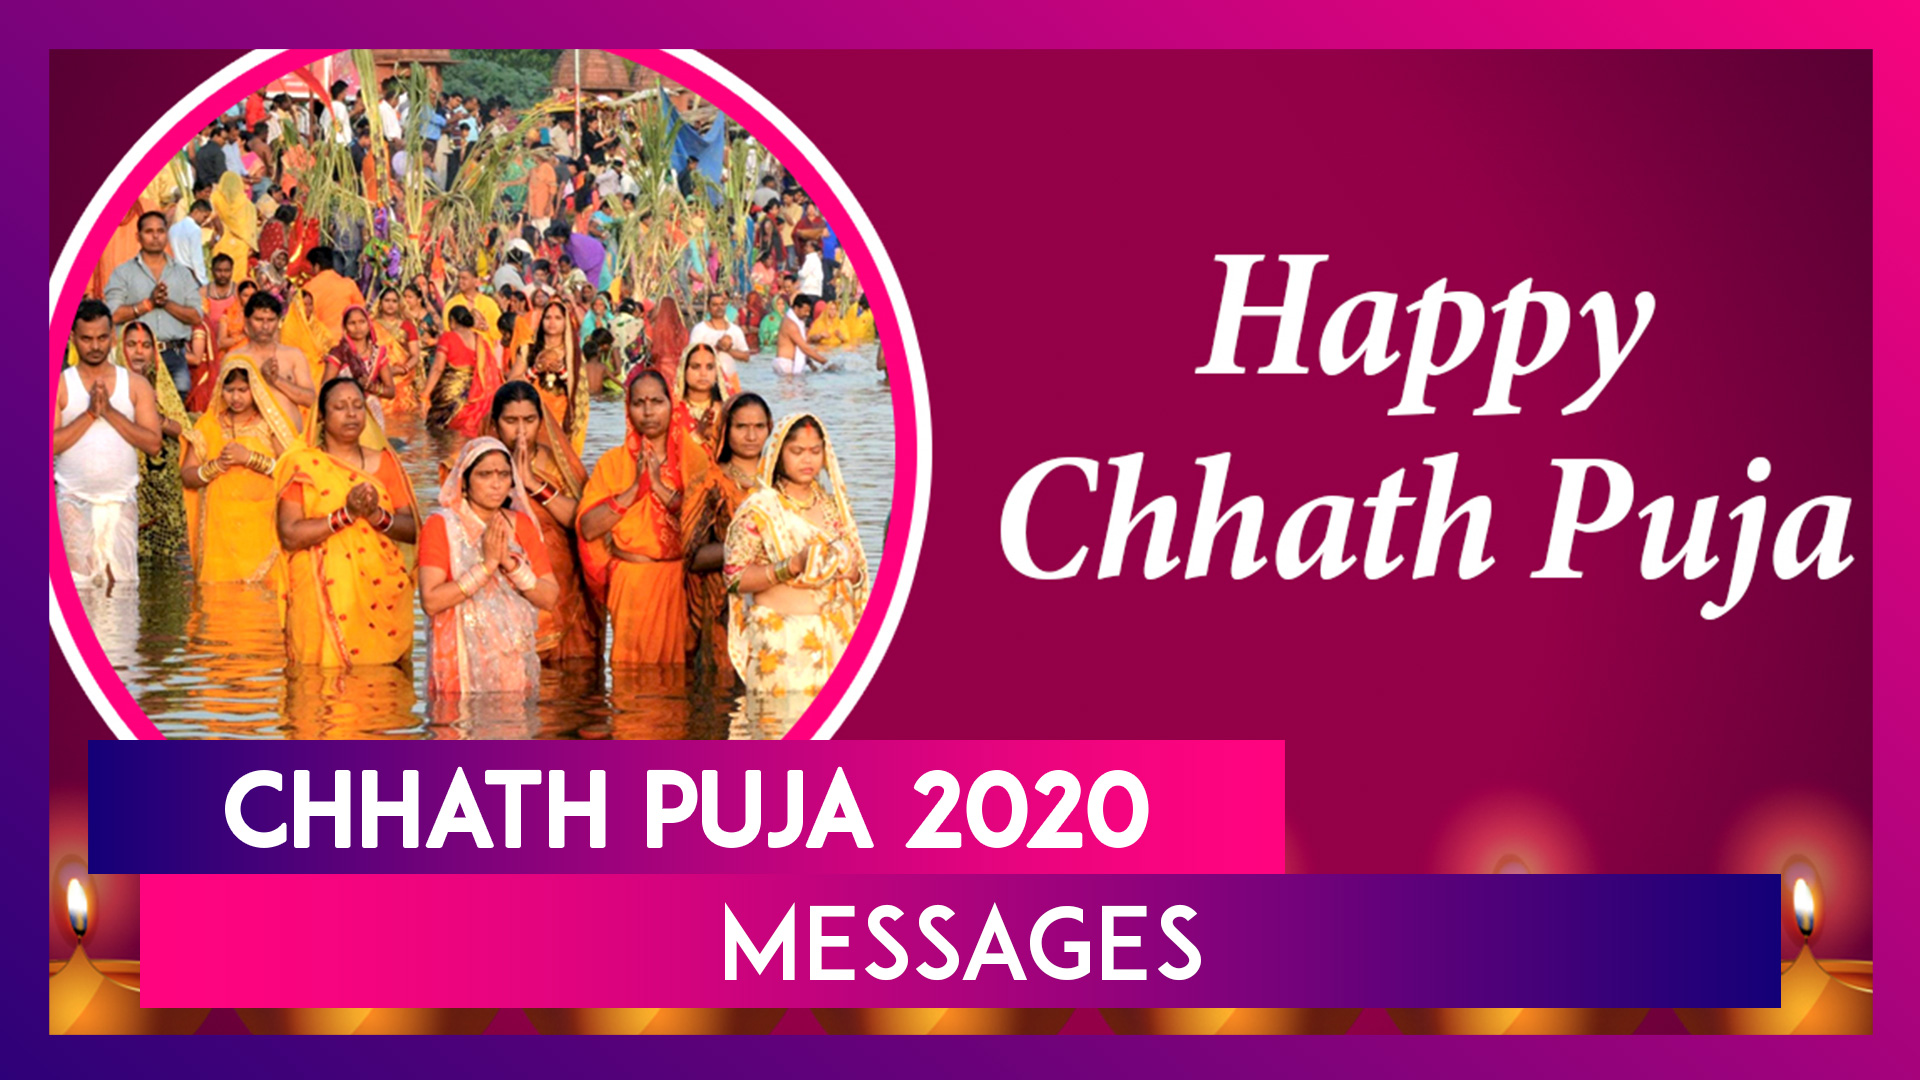 Happy Chhath Puja 2020 Greetings: WhatsApp Messages, Quotes, Images & Wishes For Your Loved Ones